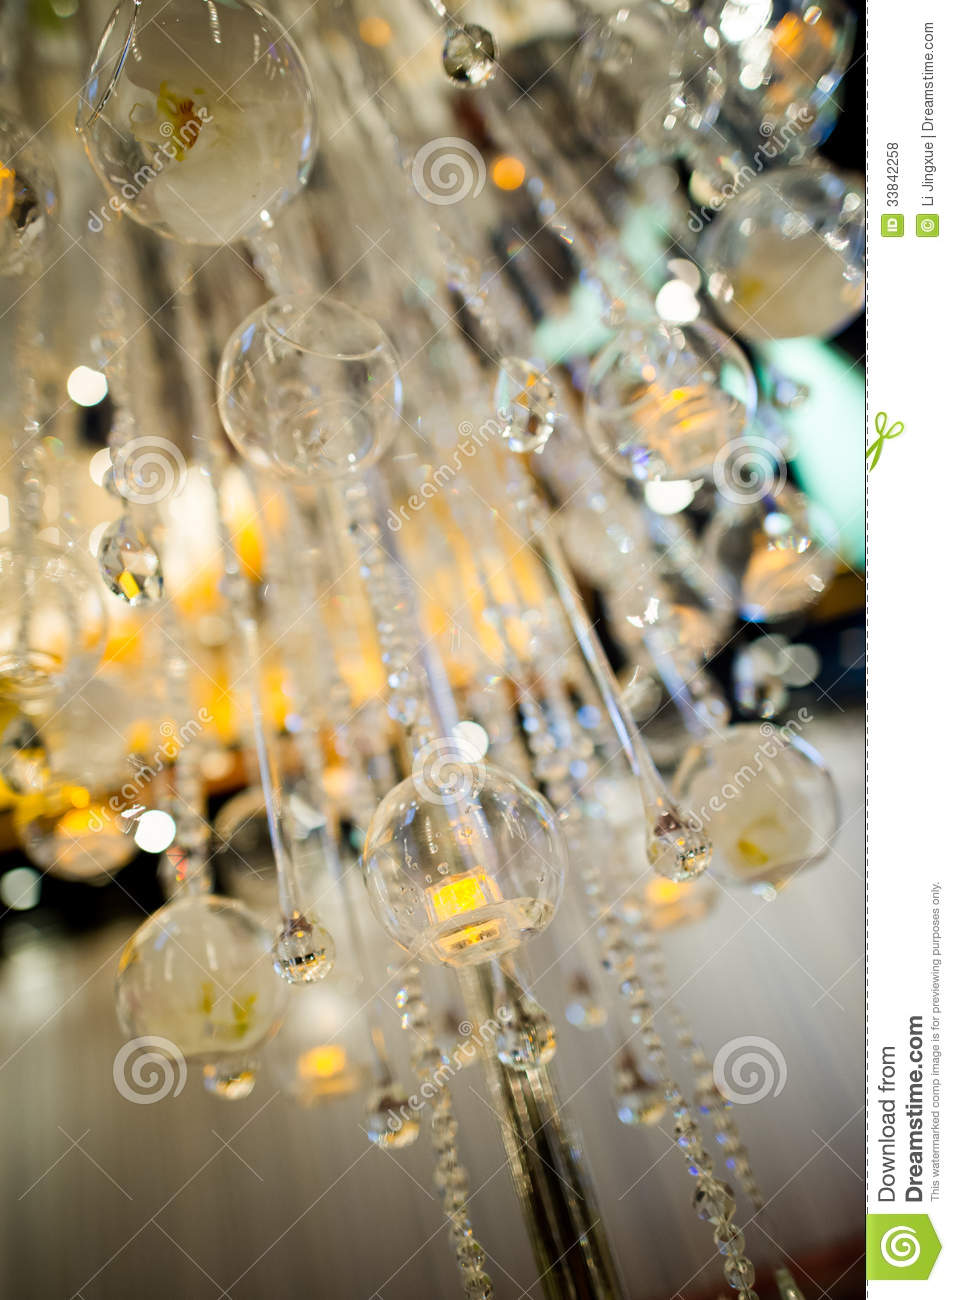 Wedding Decorations Royalty Free Stock Photos - Image: 33842258